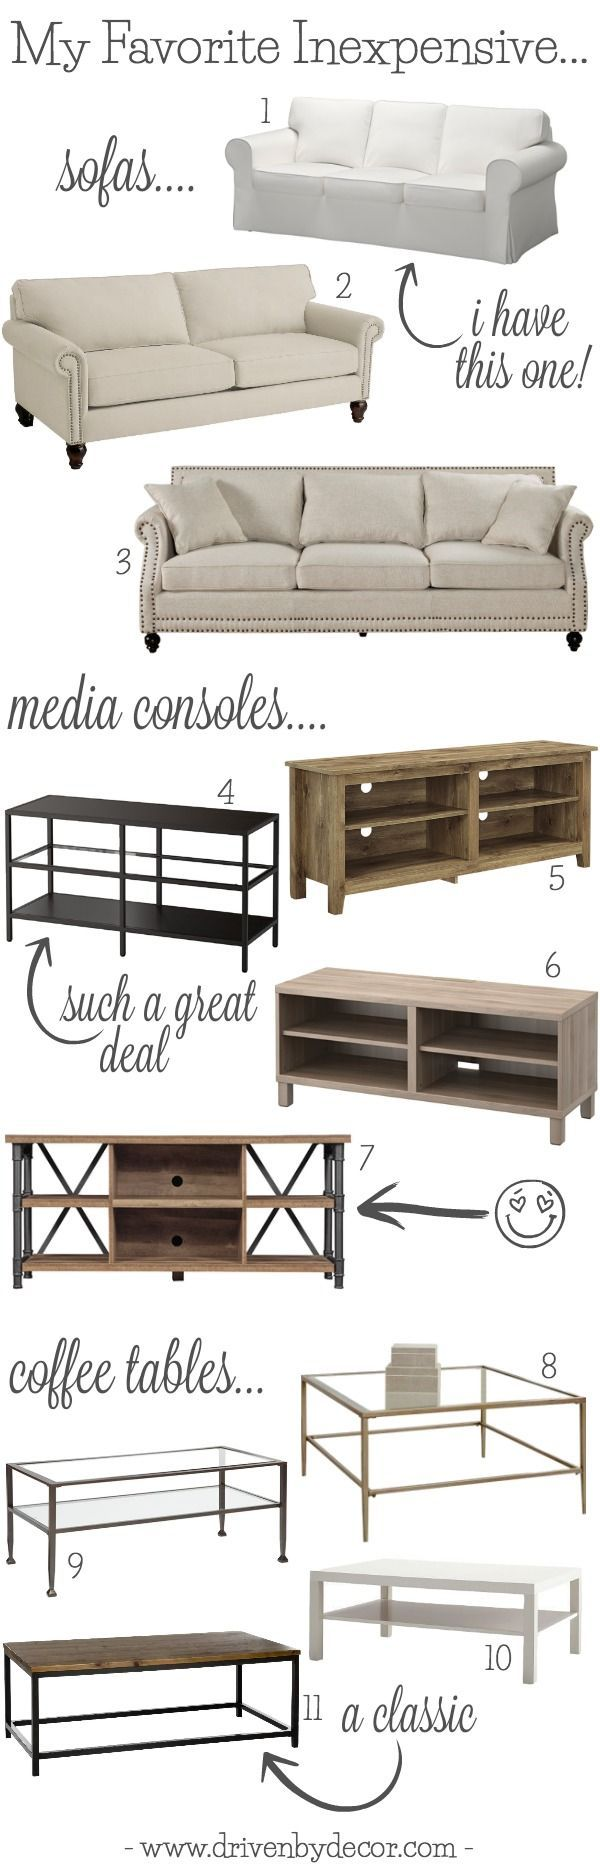 The best inexpensive, sofas, media consoles, and coffee tables!